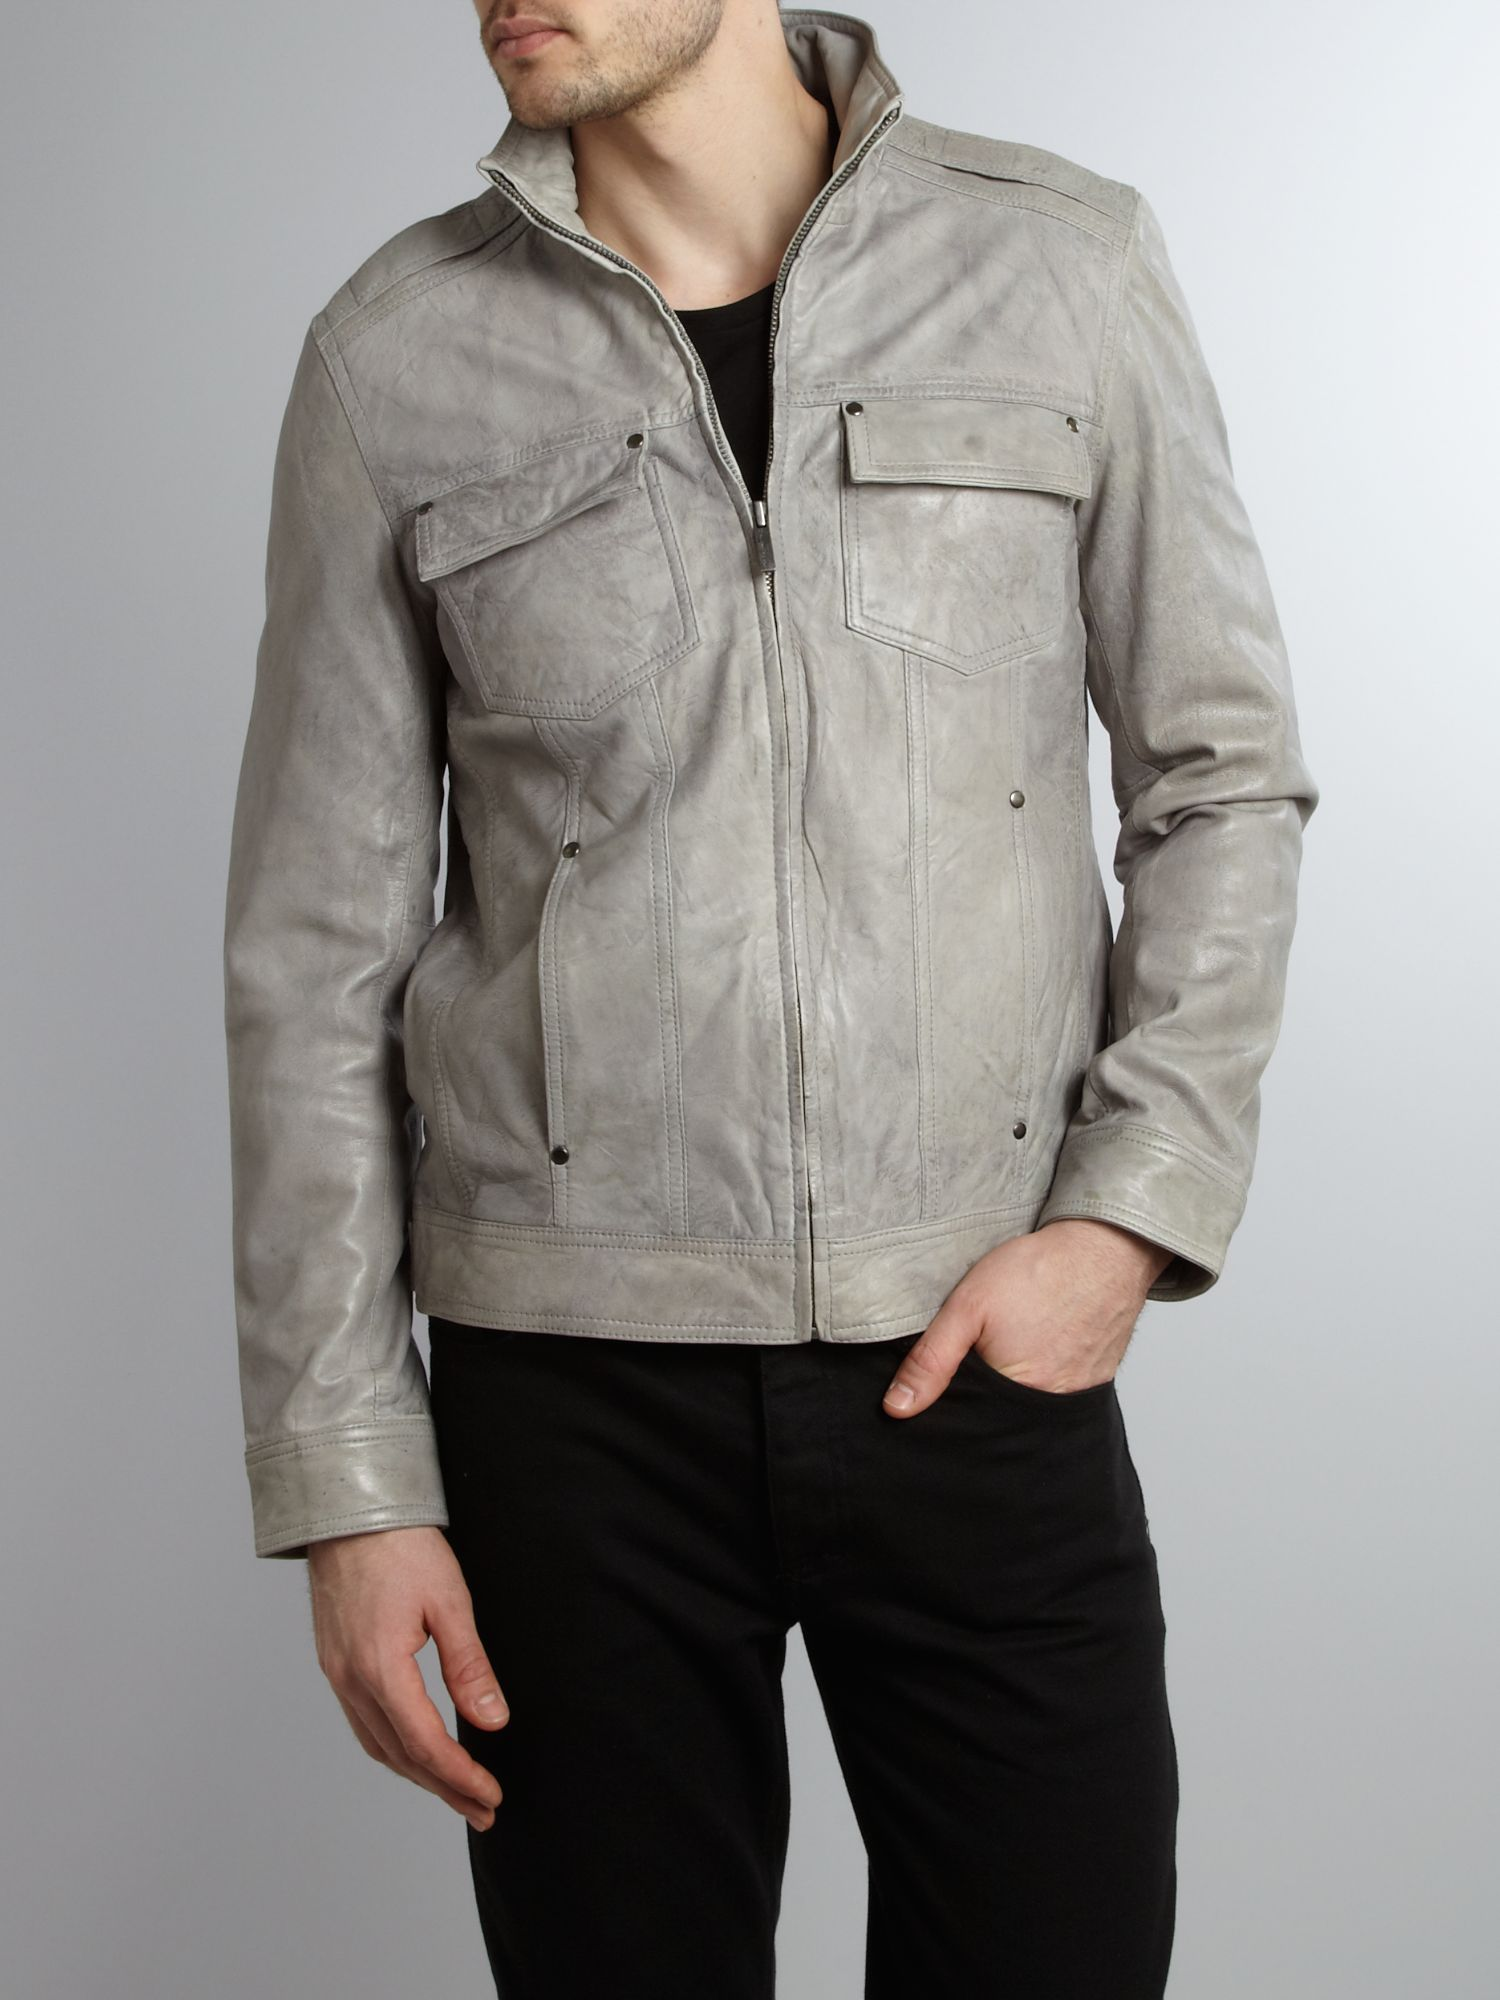 Distressed look leather funnel neck jacket